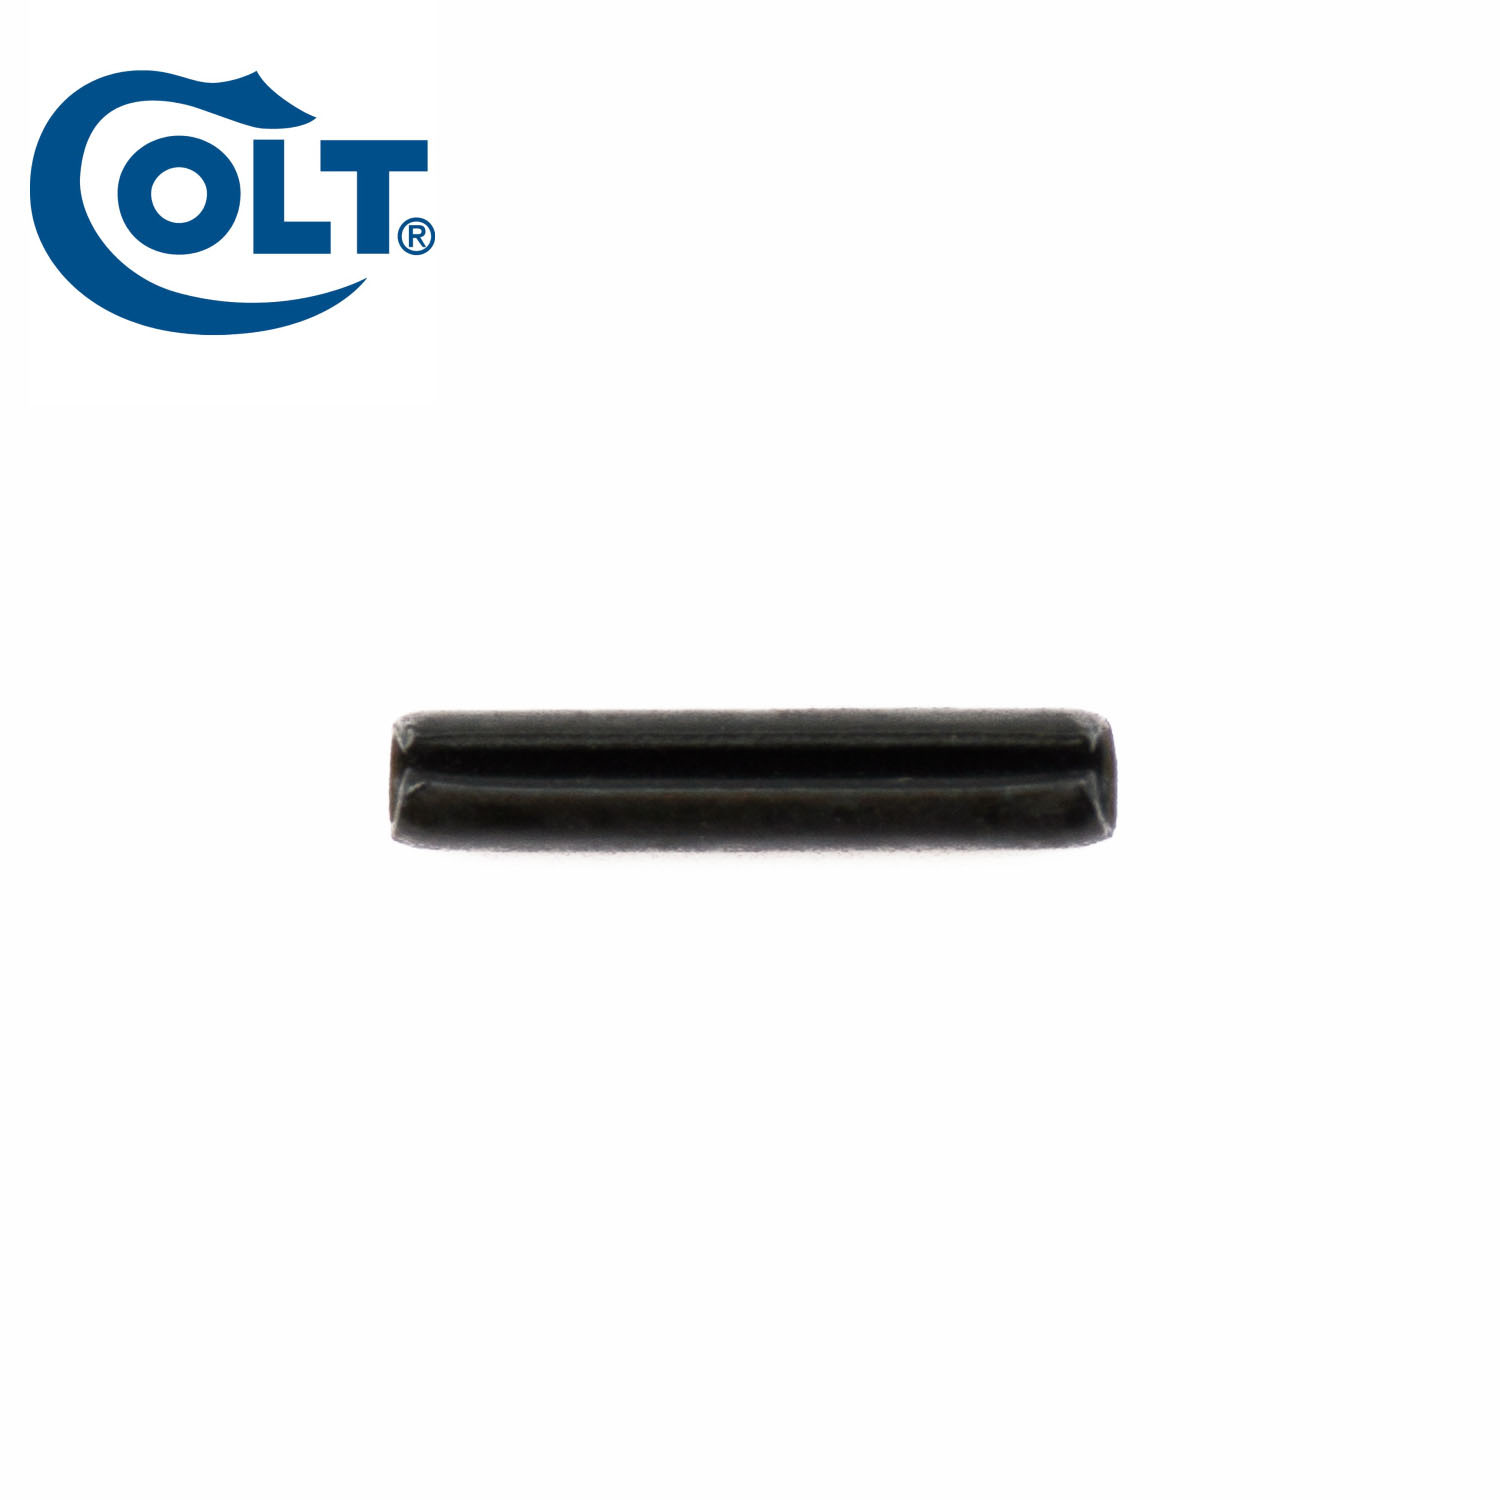 Colt Ar 15 Bolt Catch Roll Pin Mgw